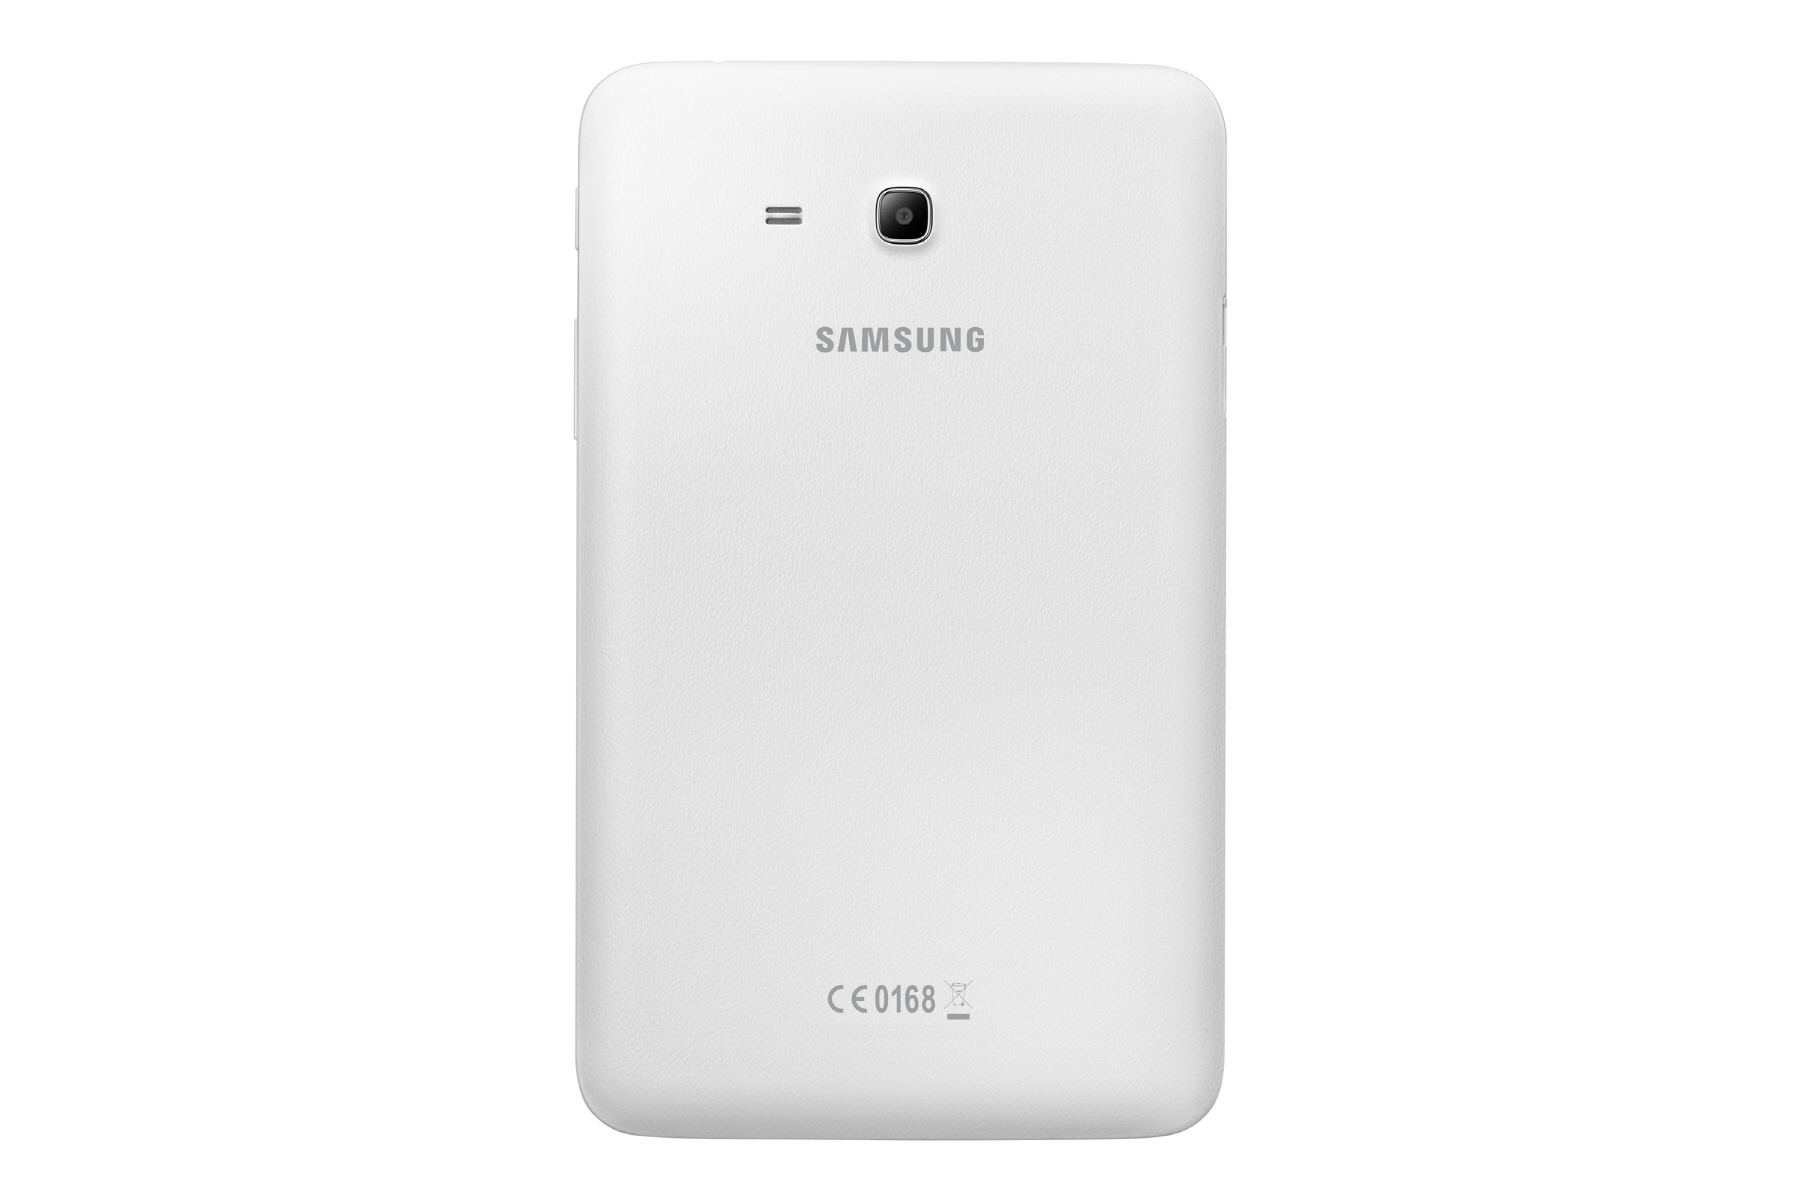 samsung galaxy tab 3 lite is out now specifications and price axeetech. Black Bedroom Furniture Sets. Home Design Ideas